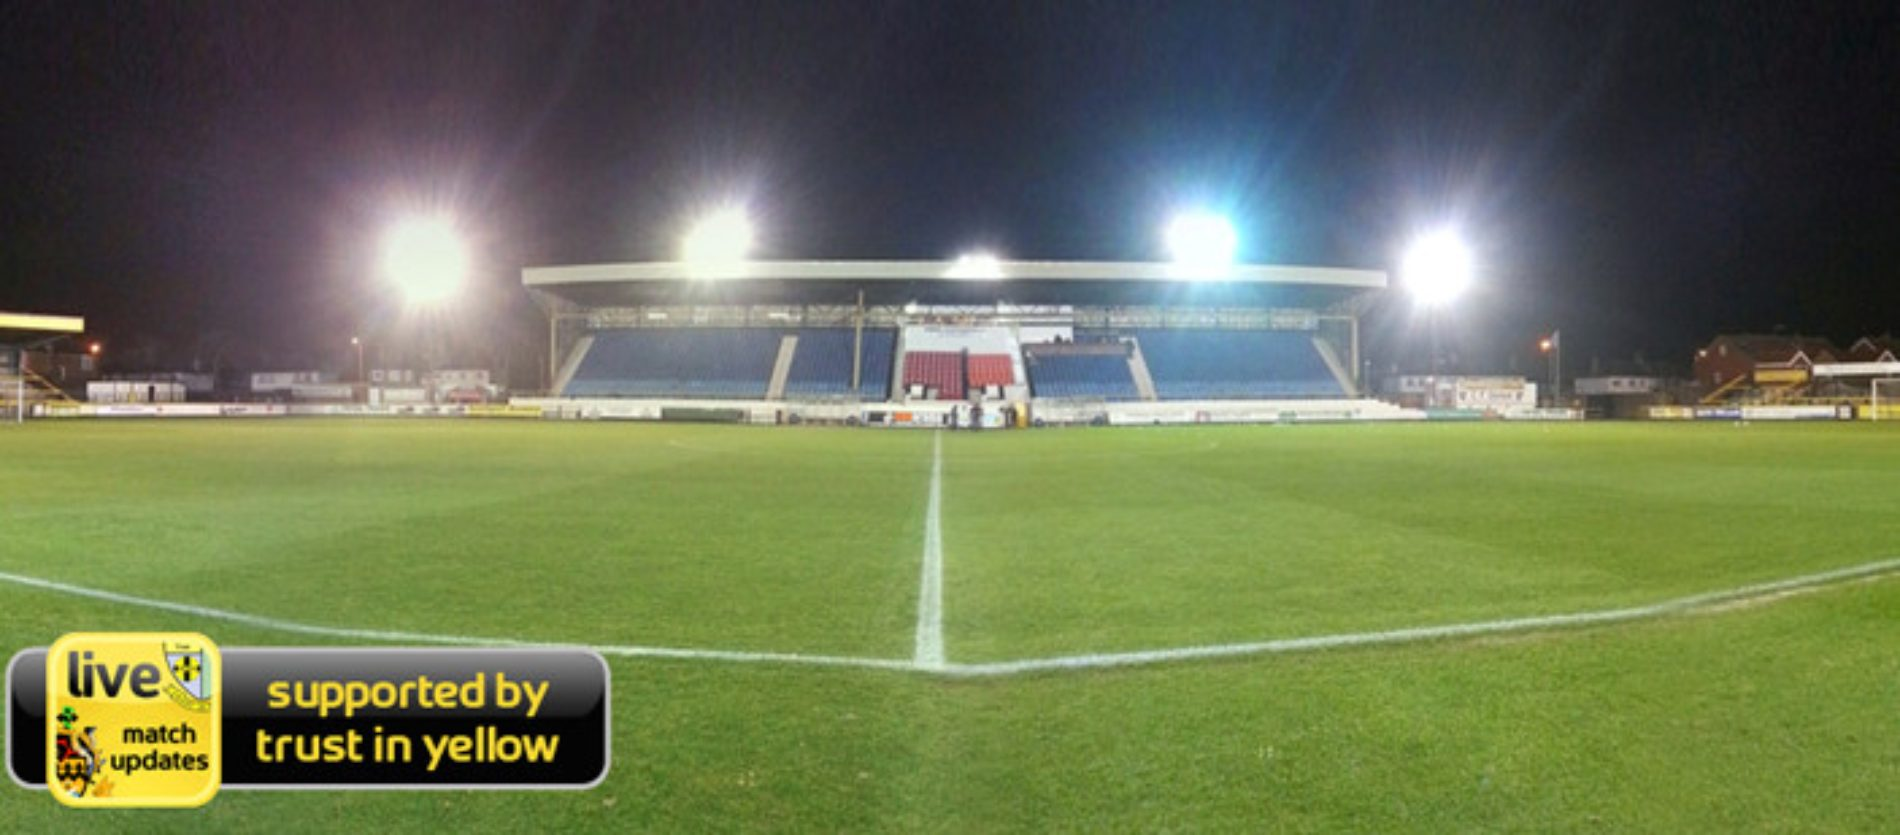 LIVE UPDATES – Southport 3-2 Wrexham – Full Time